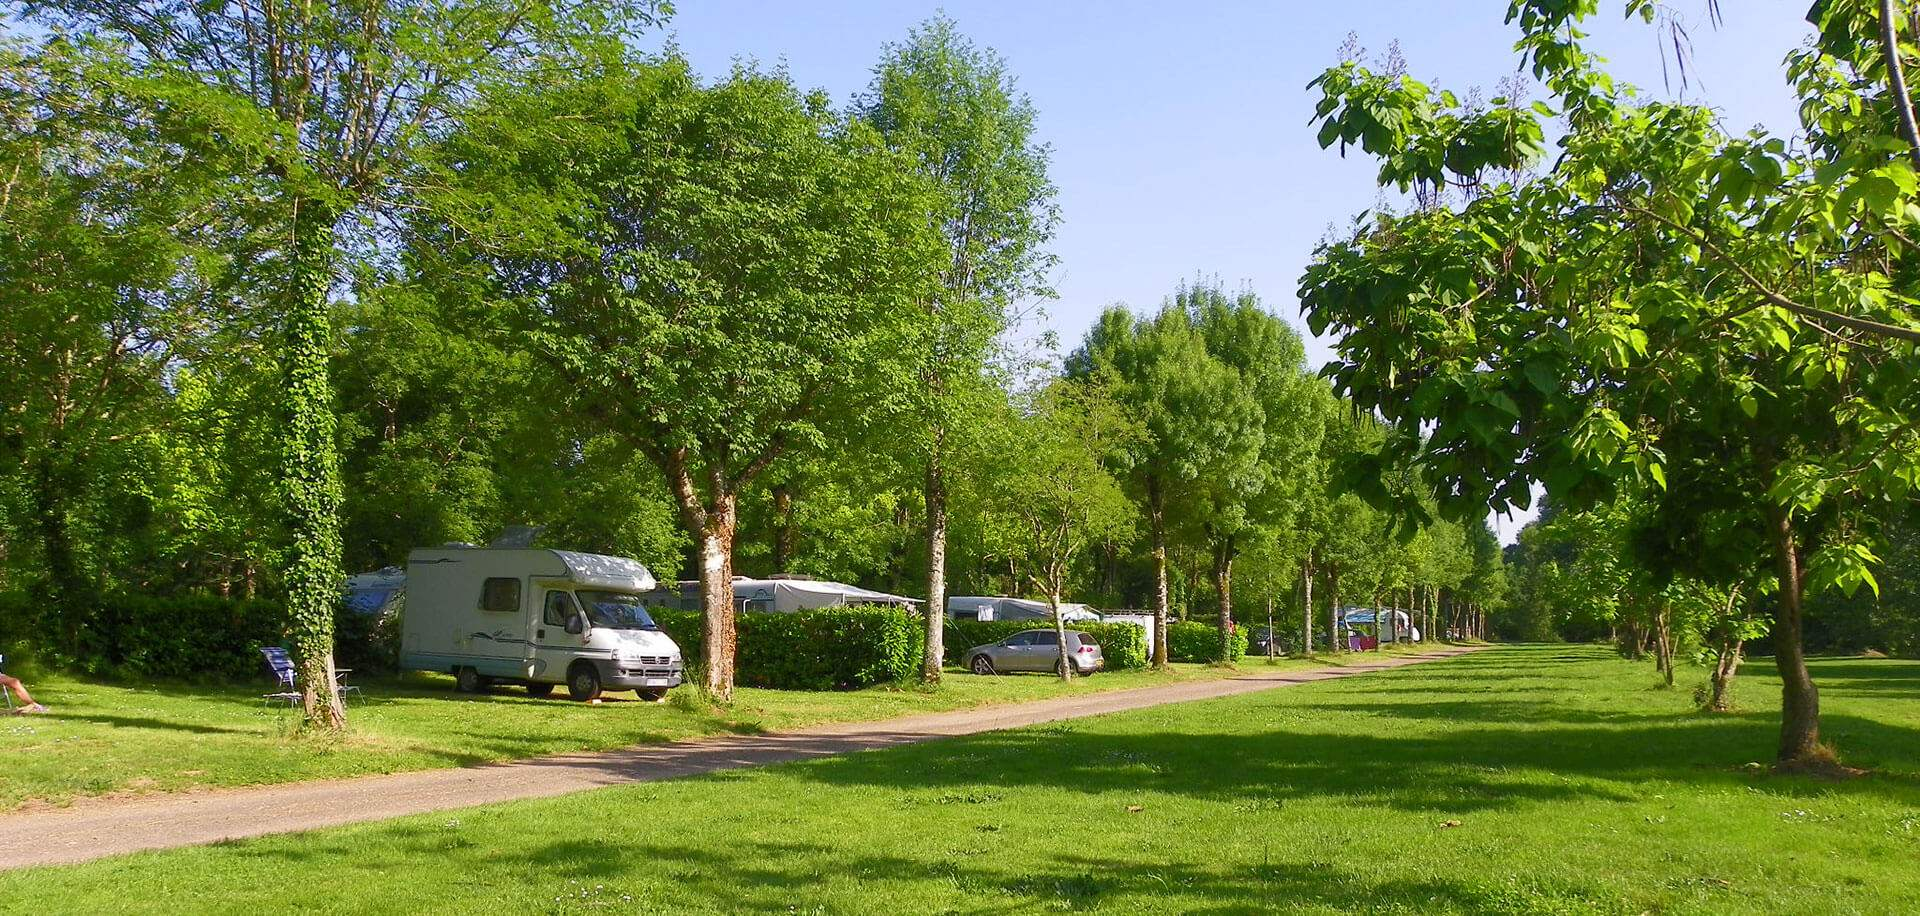 Pitches for motorhome campers in the Dordogne